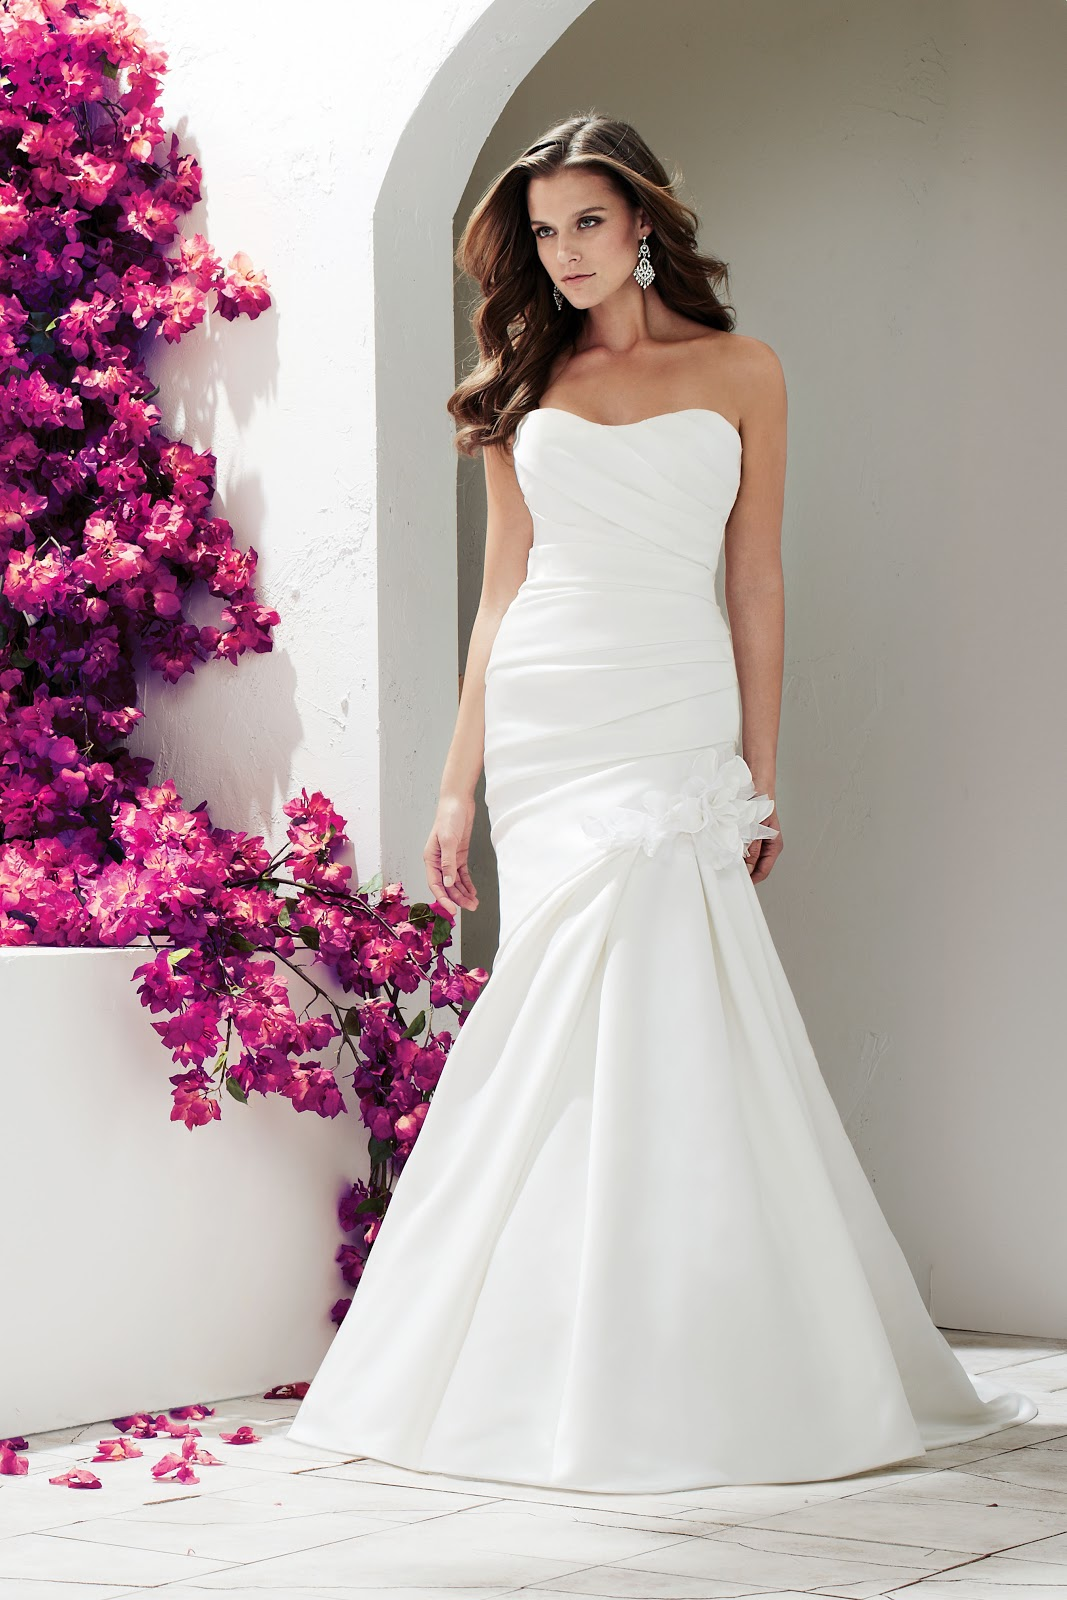 Style For The Aisle: Day 4: Sleek & Minimalist Bridal Gowns